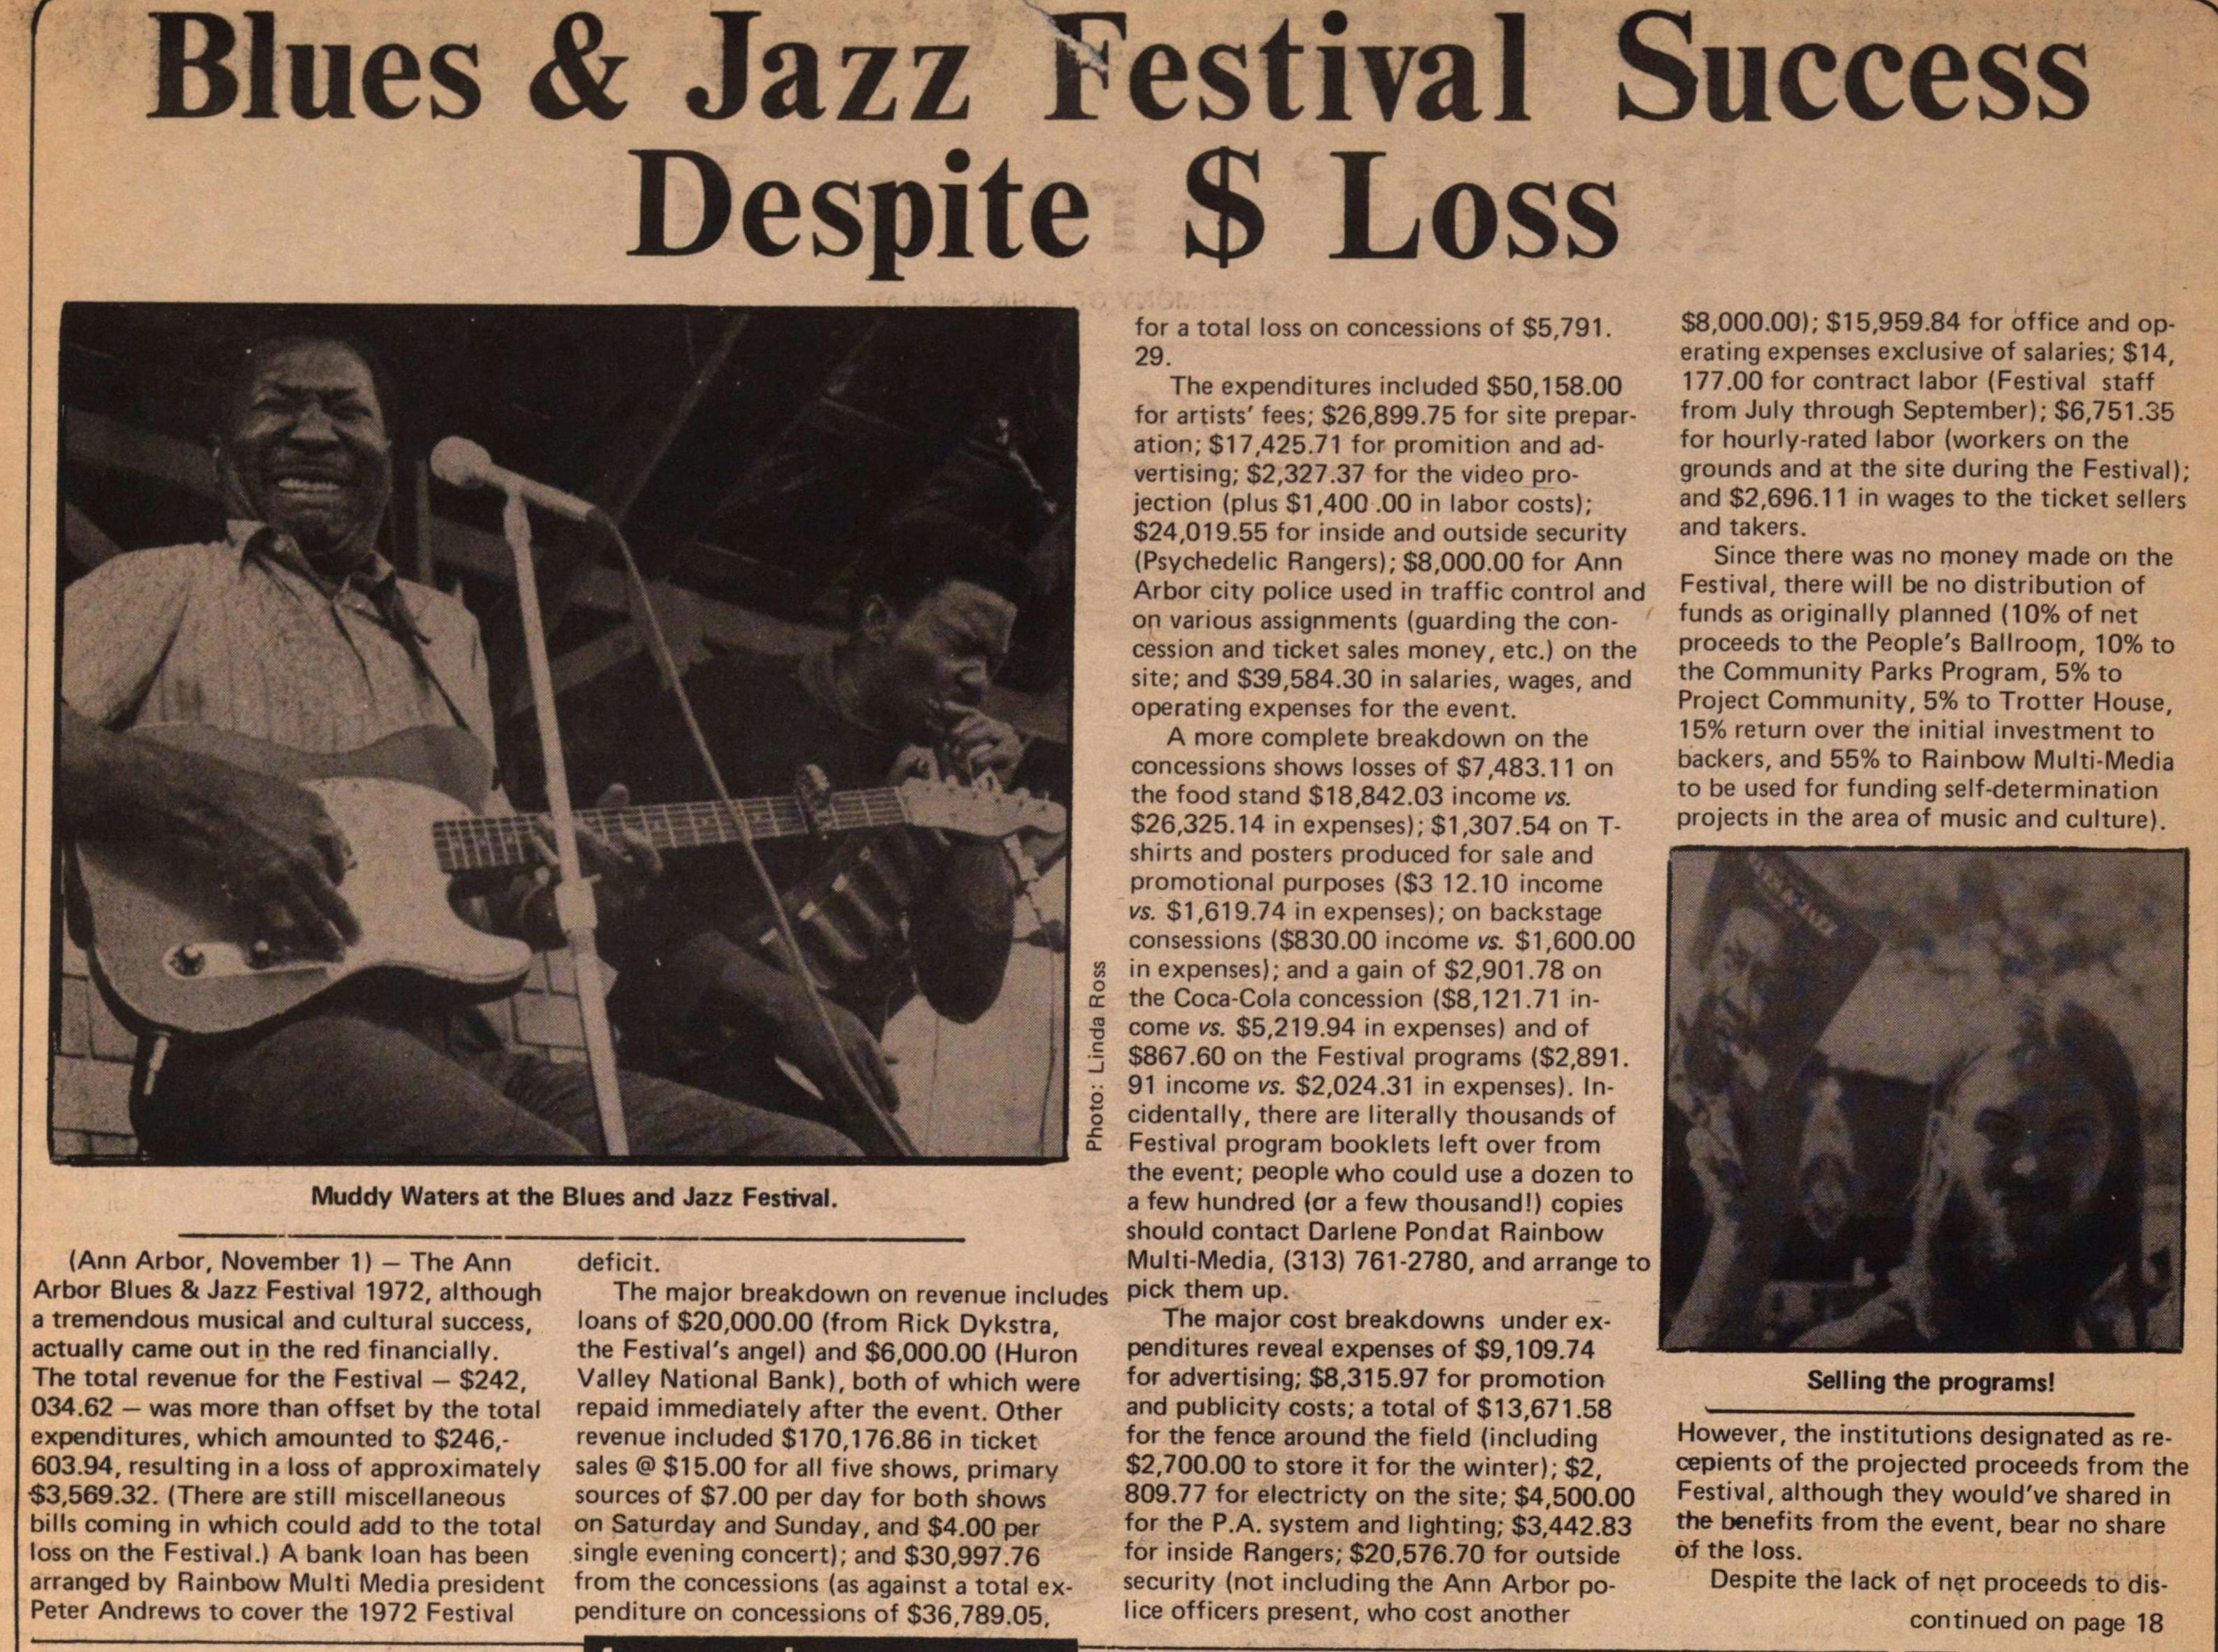 Blues & Jazz Festival Success Despite $ Loss image